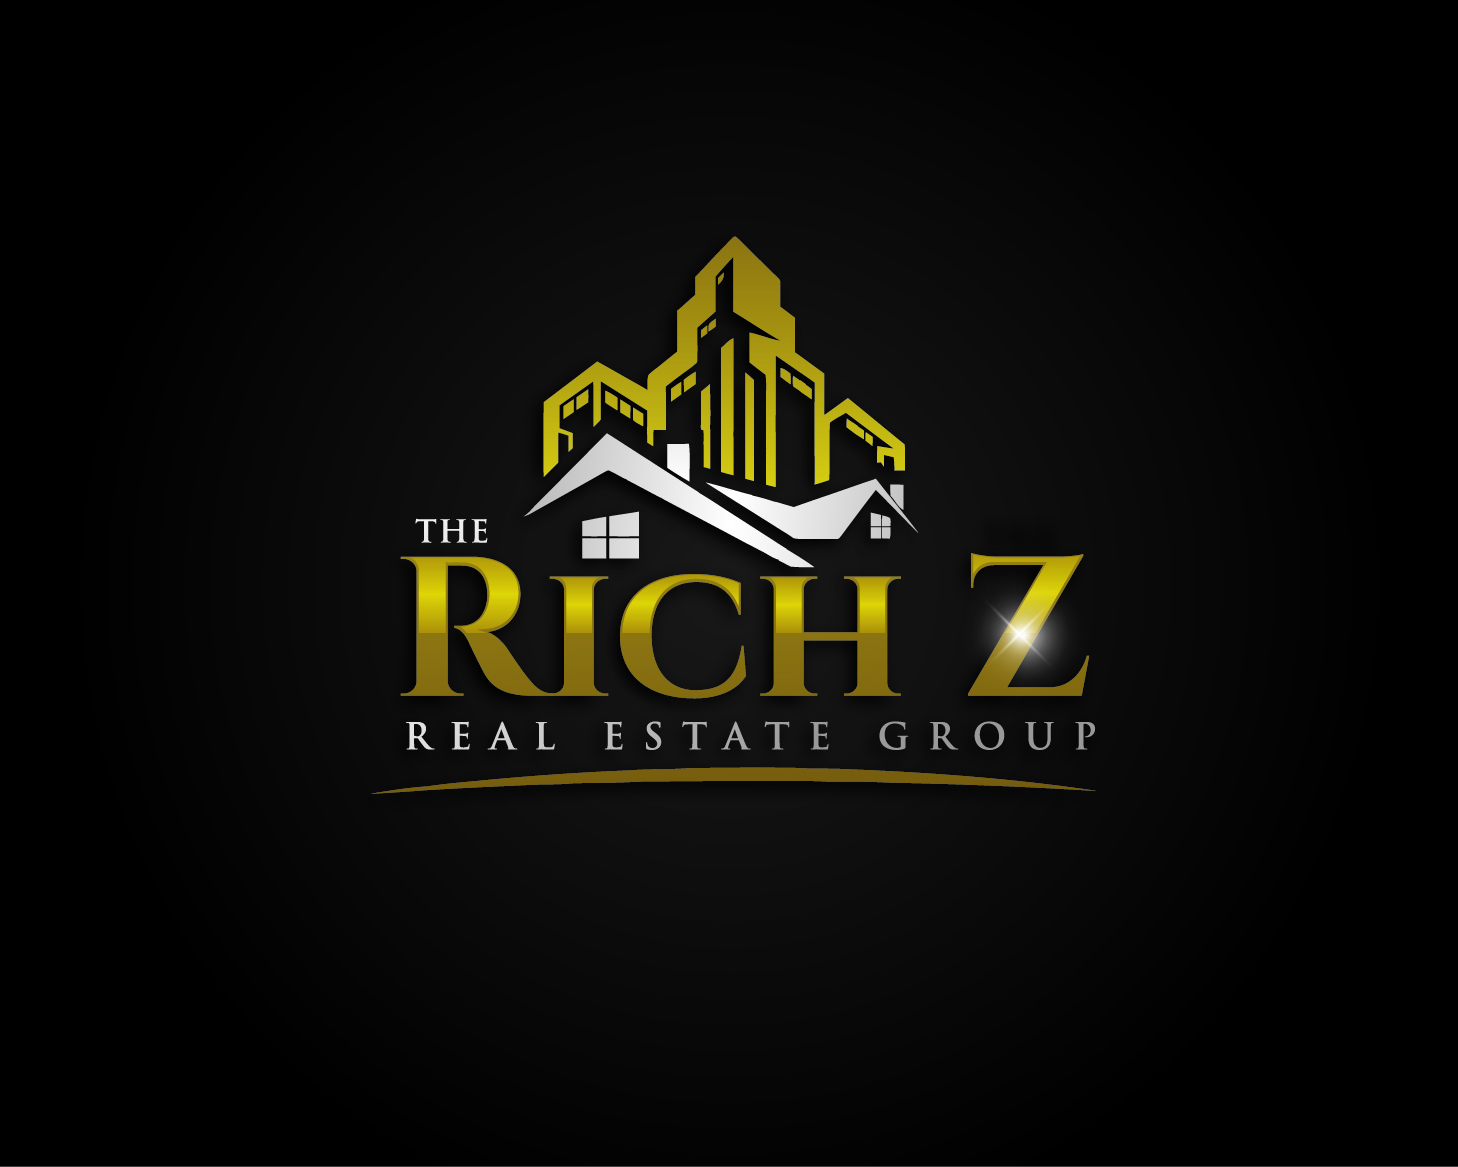 Logo Design by VENTSISLAV KOVACHEV - Entry No. 109 in the Logo Design Contest The Rich Z. Real Estate Group Logo Design.